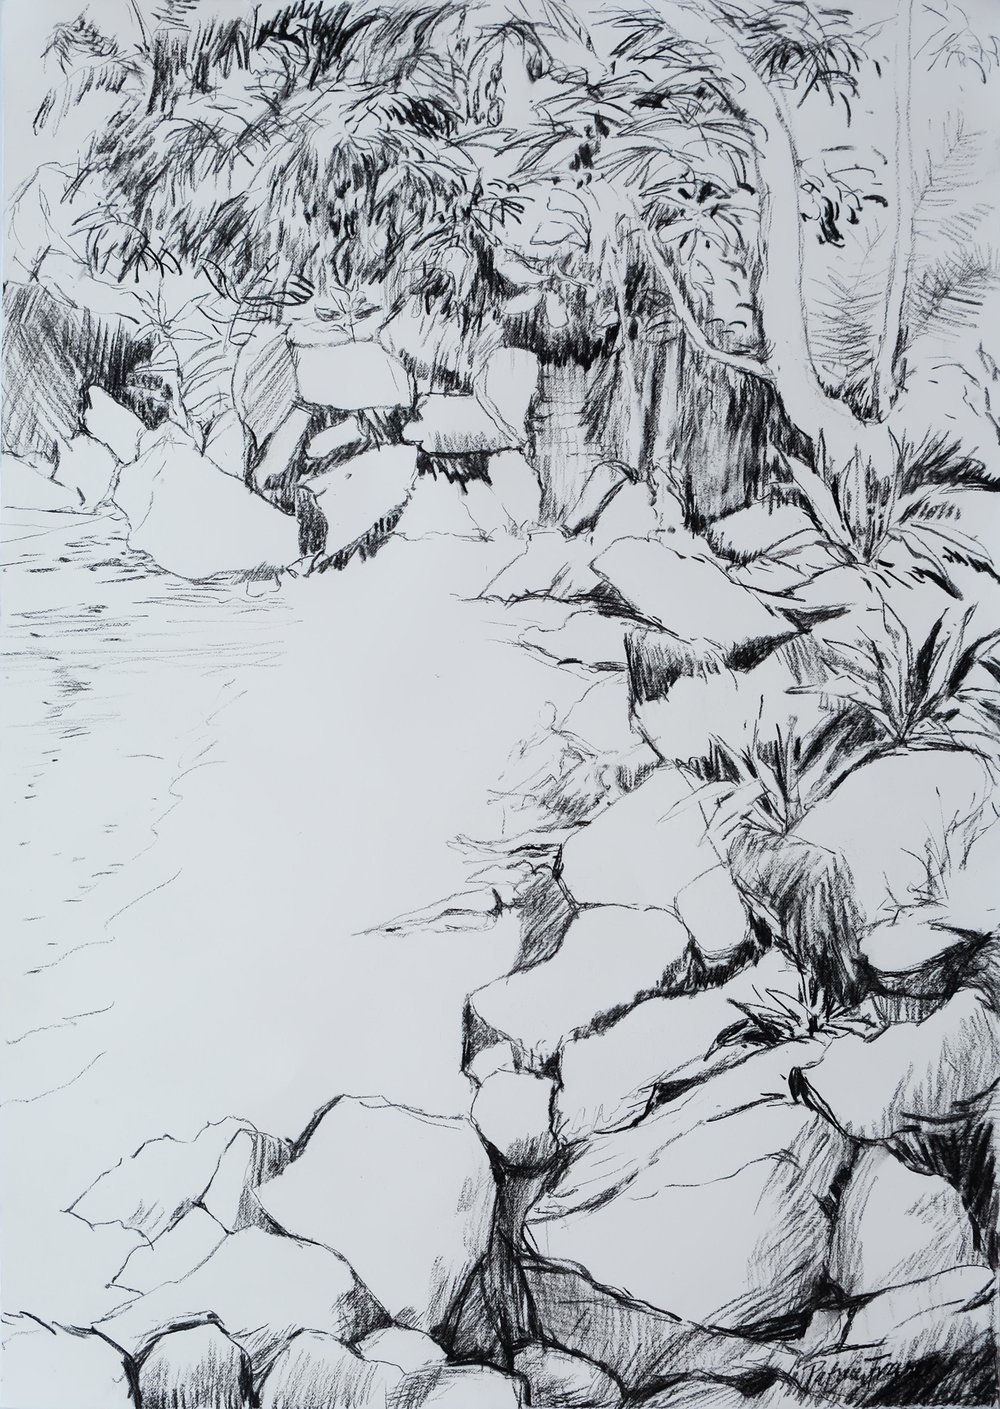 THE BATHERS  71 x 50cm Charcoal on Fabriano R 8 200